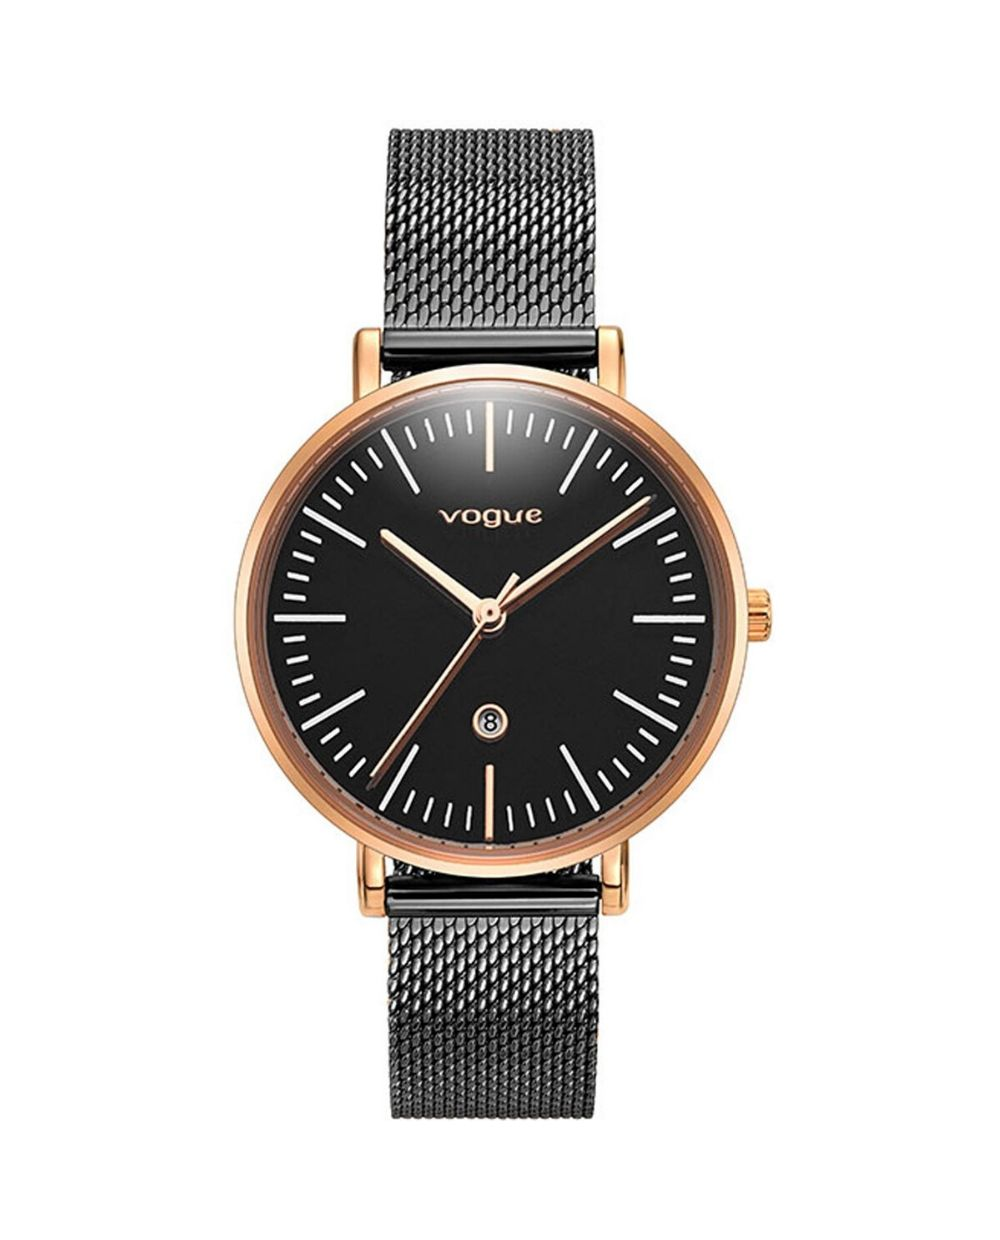 Vogue Women's Watch 812851 with black bracelet and pink frame. Find it at Atofio Jewelry in Korydallos.